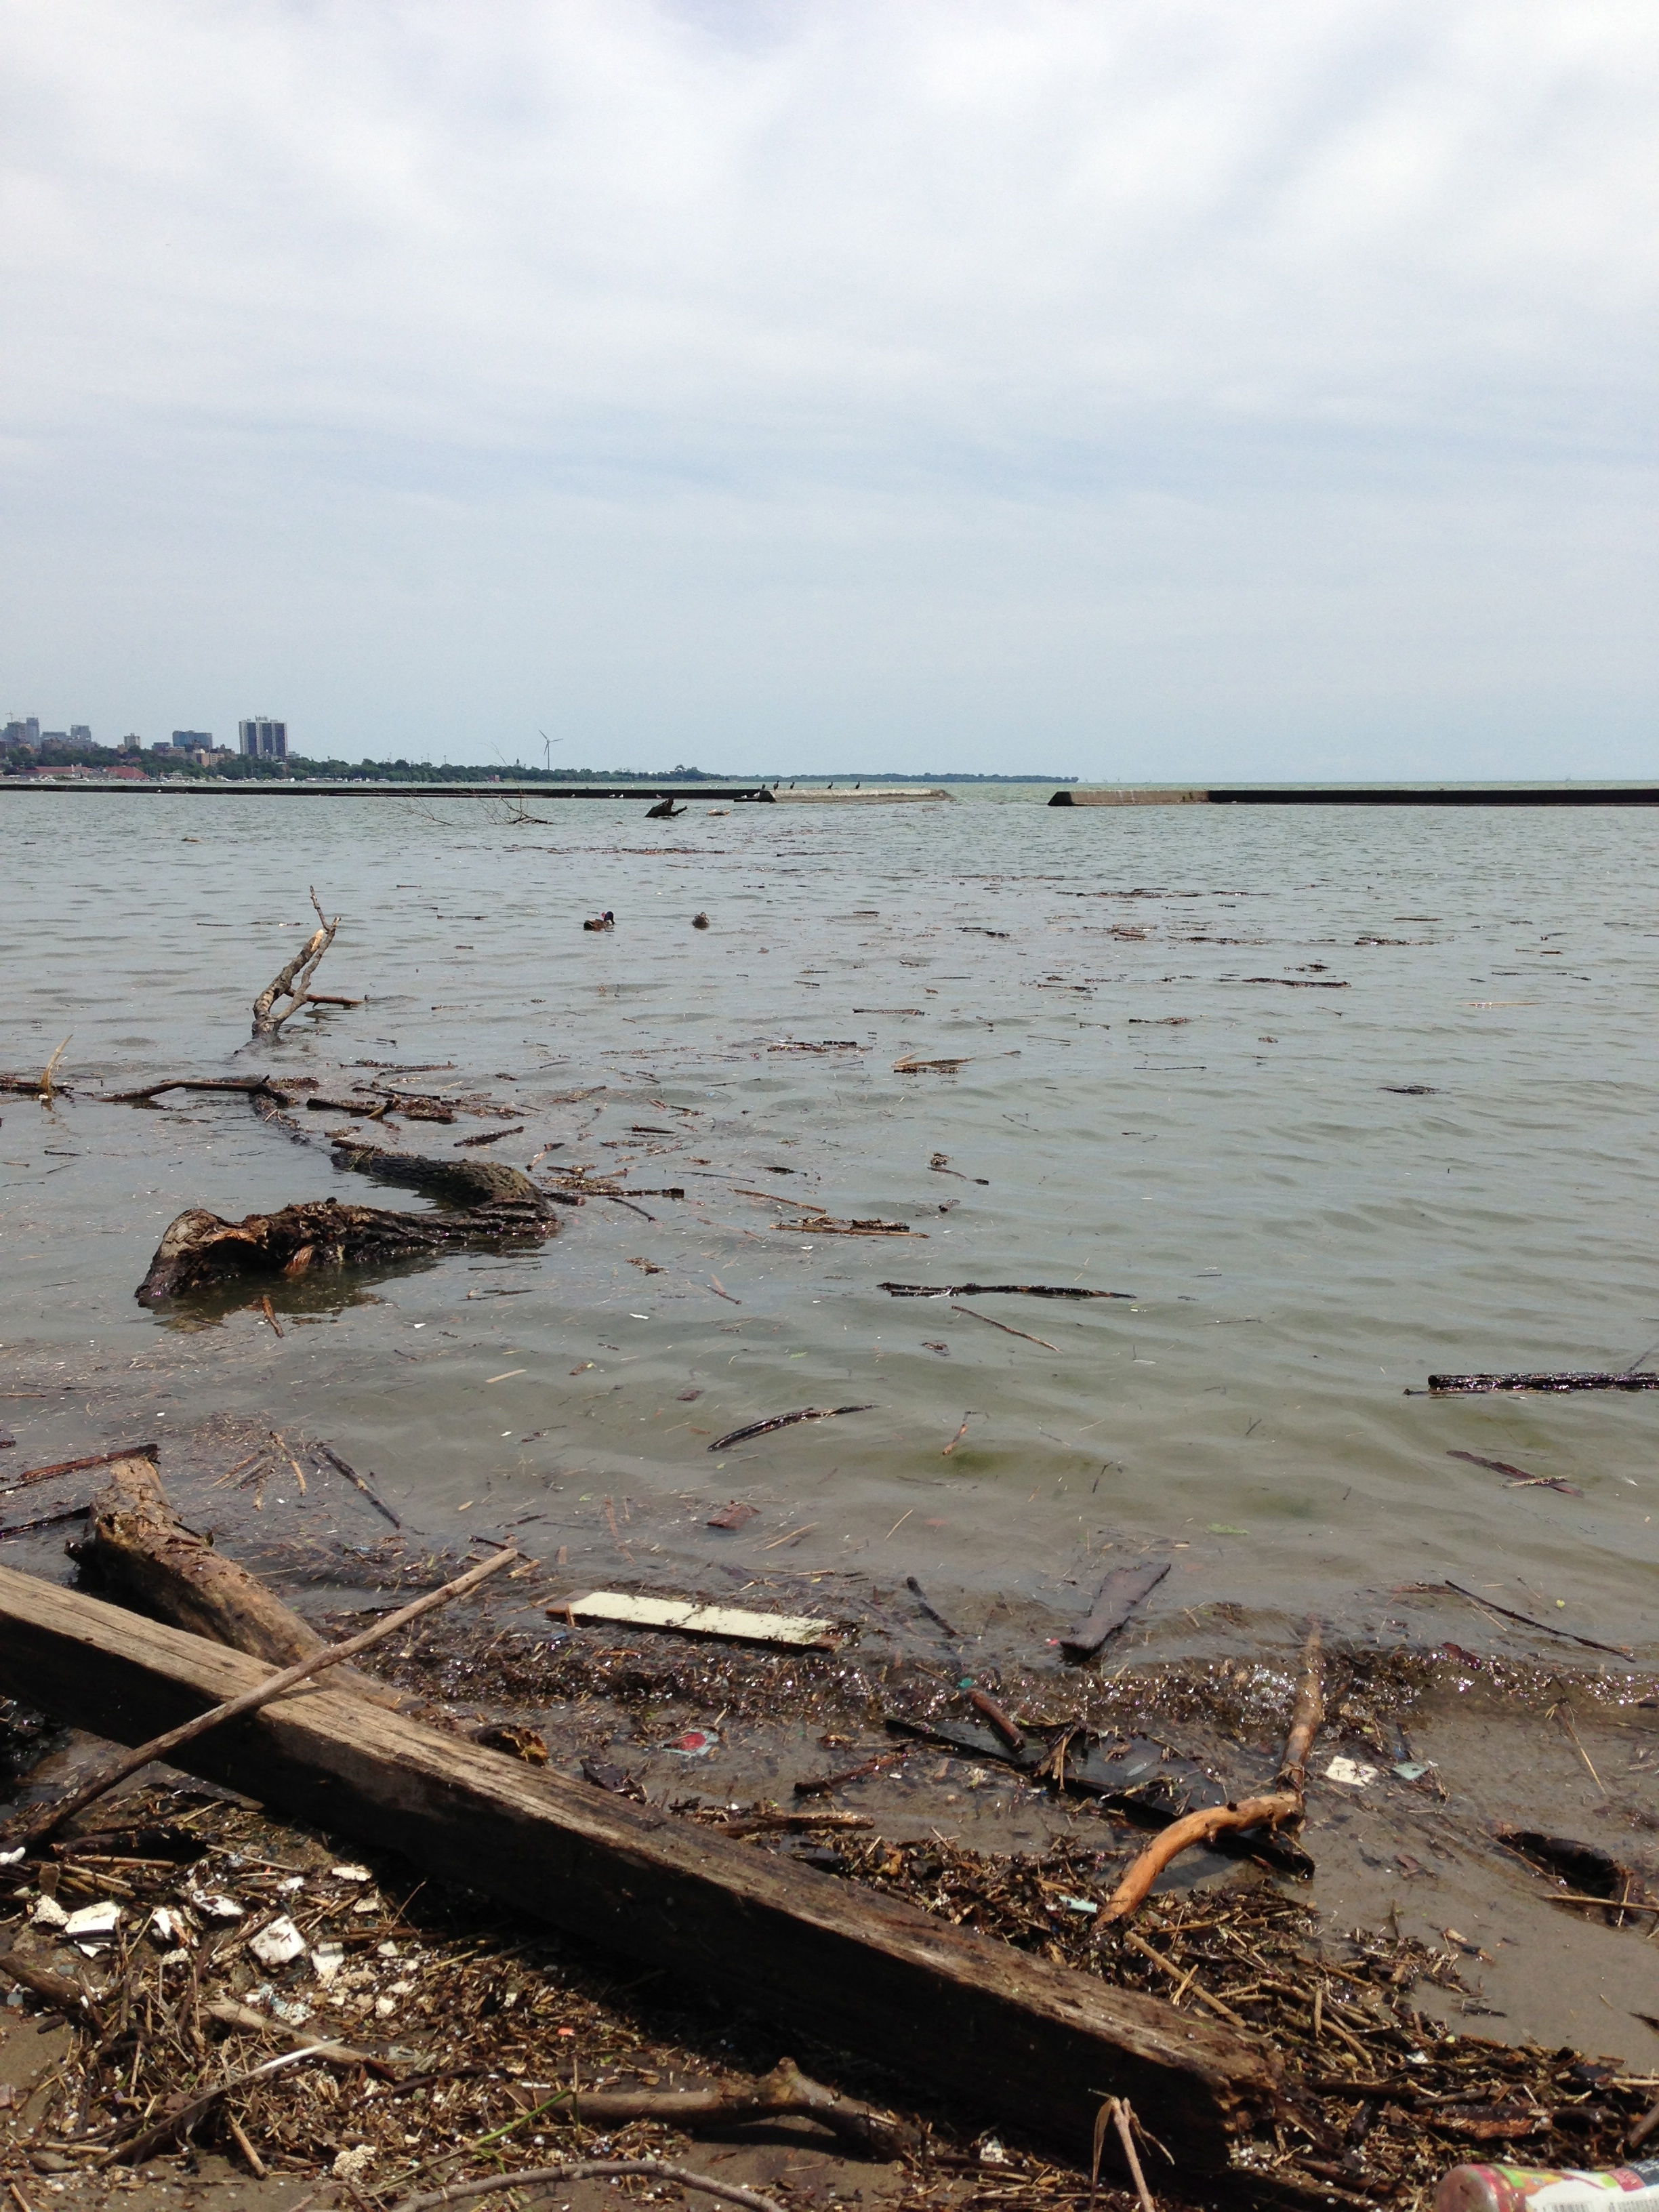 Extensive debris washing ashore near the mouth of the Humber River post-flood. Photo courtesy of Lake Ontario Waterkeeper. July 12, 2013.